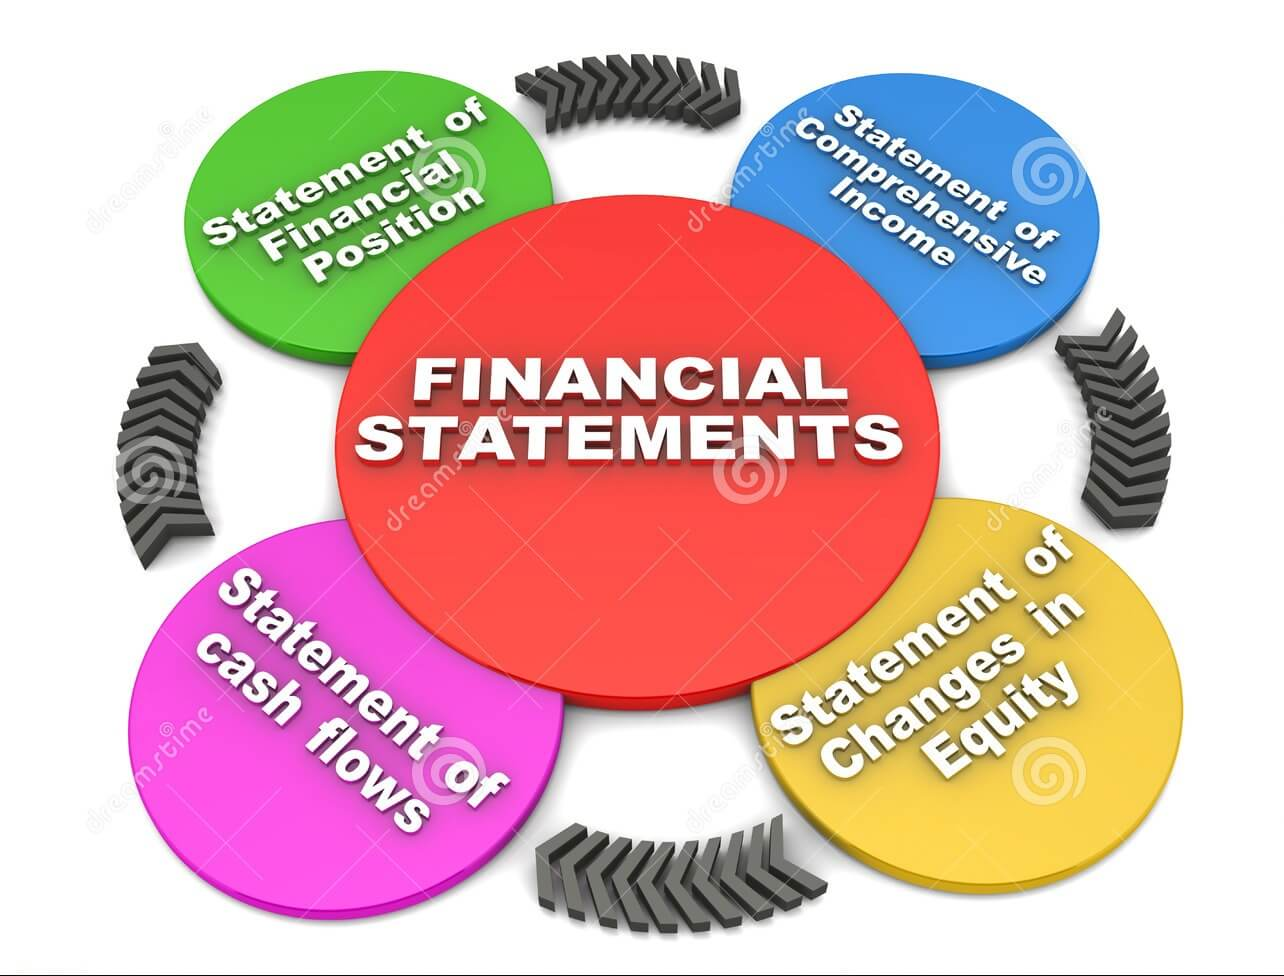 http://www.dreamstime.com/stock-photography-financial-statements-image28845002